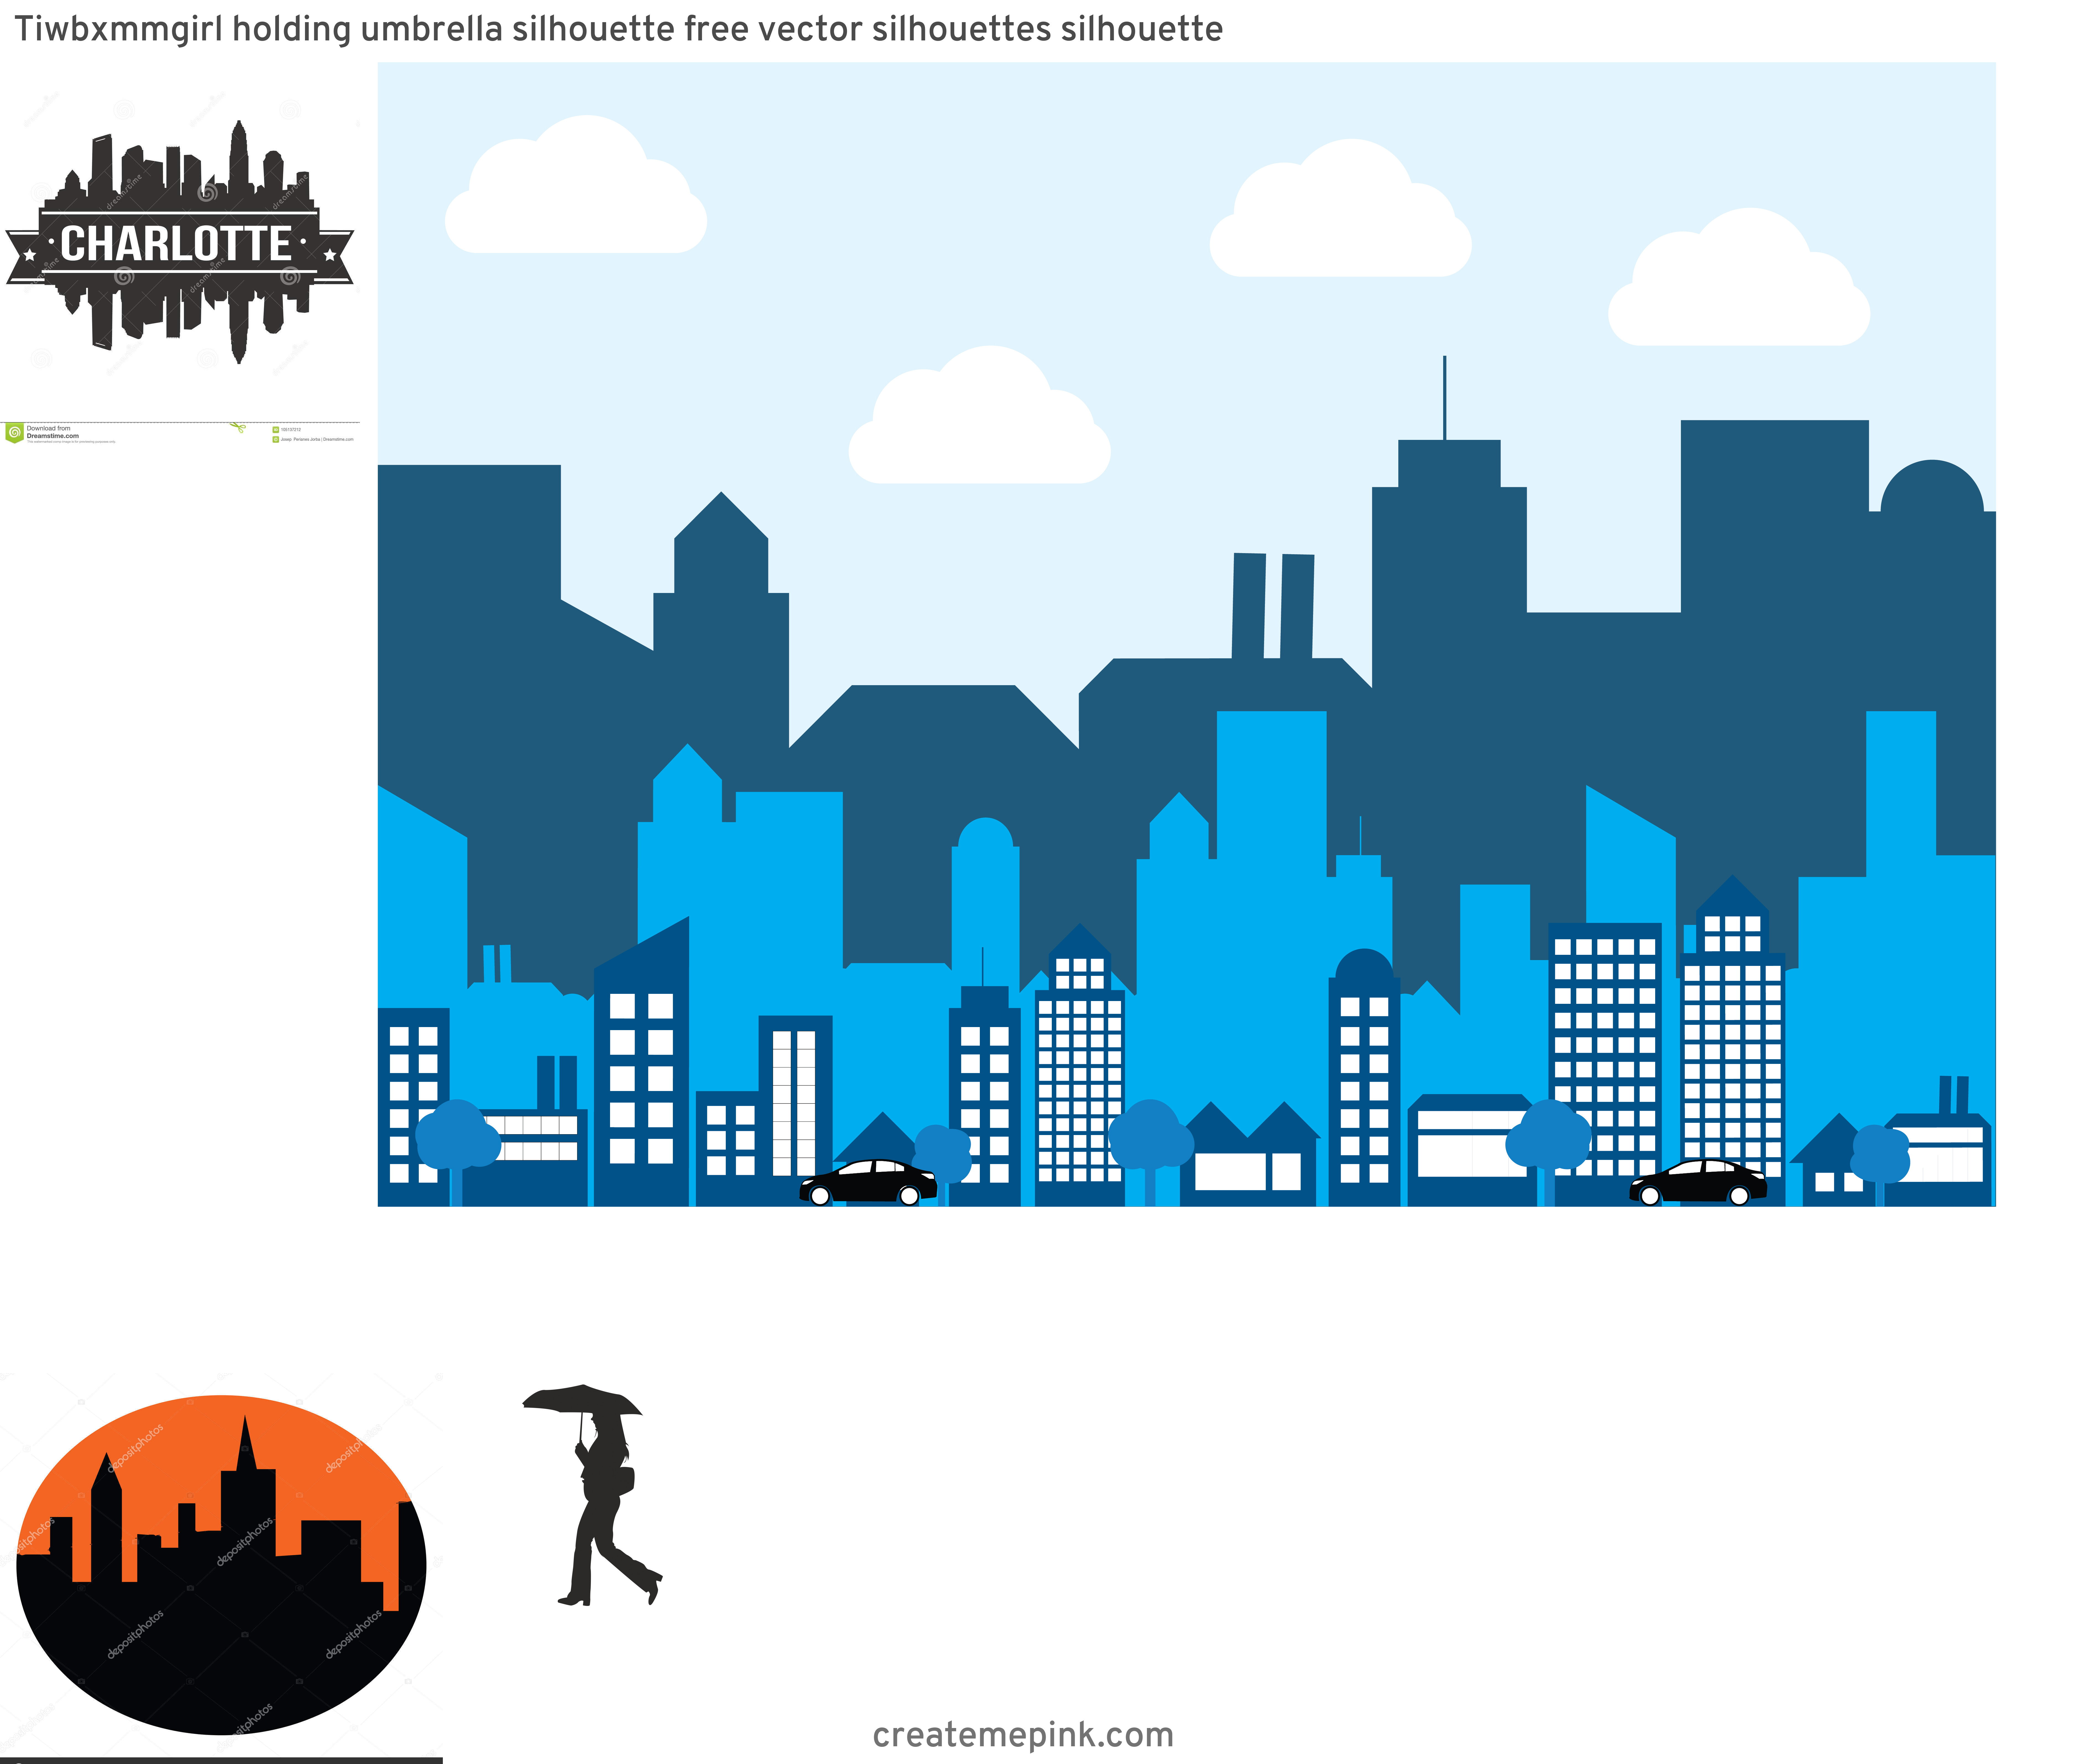 Charlotte Skyline Vector Circle: Tiwbxmmgirl Holding Umbrella Silhouette Free Vector Silhouettes Silhouette